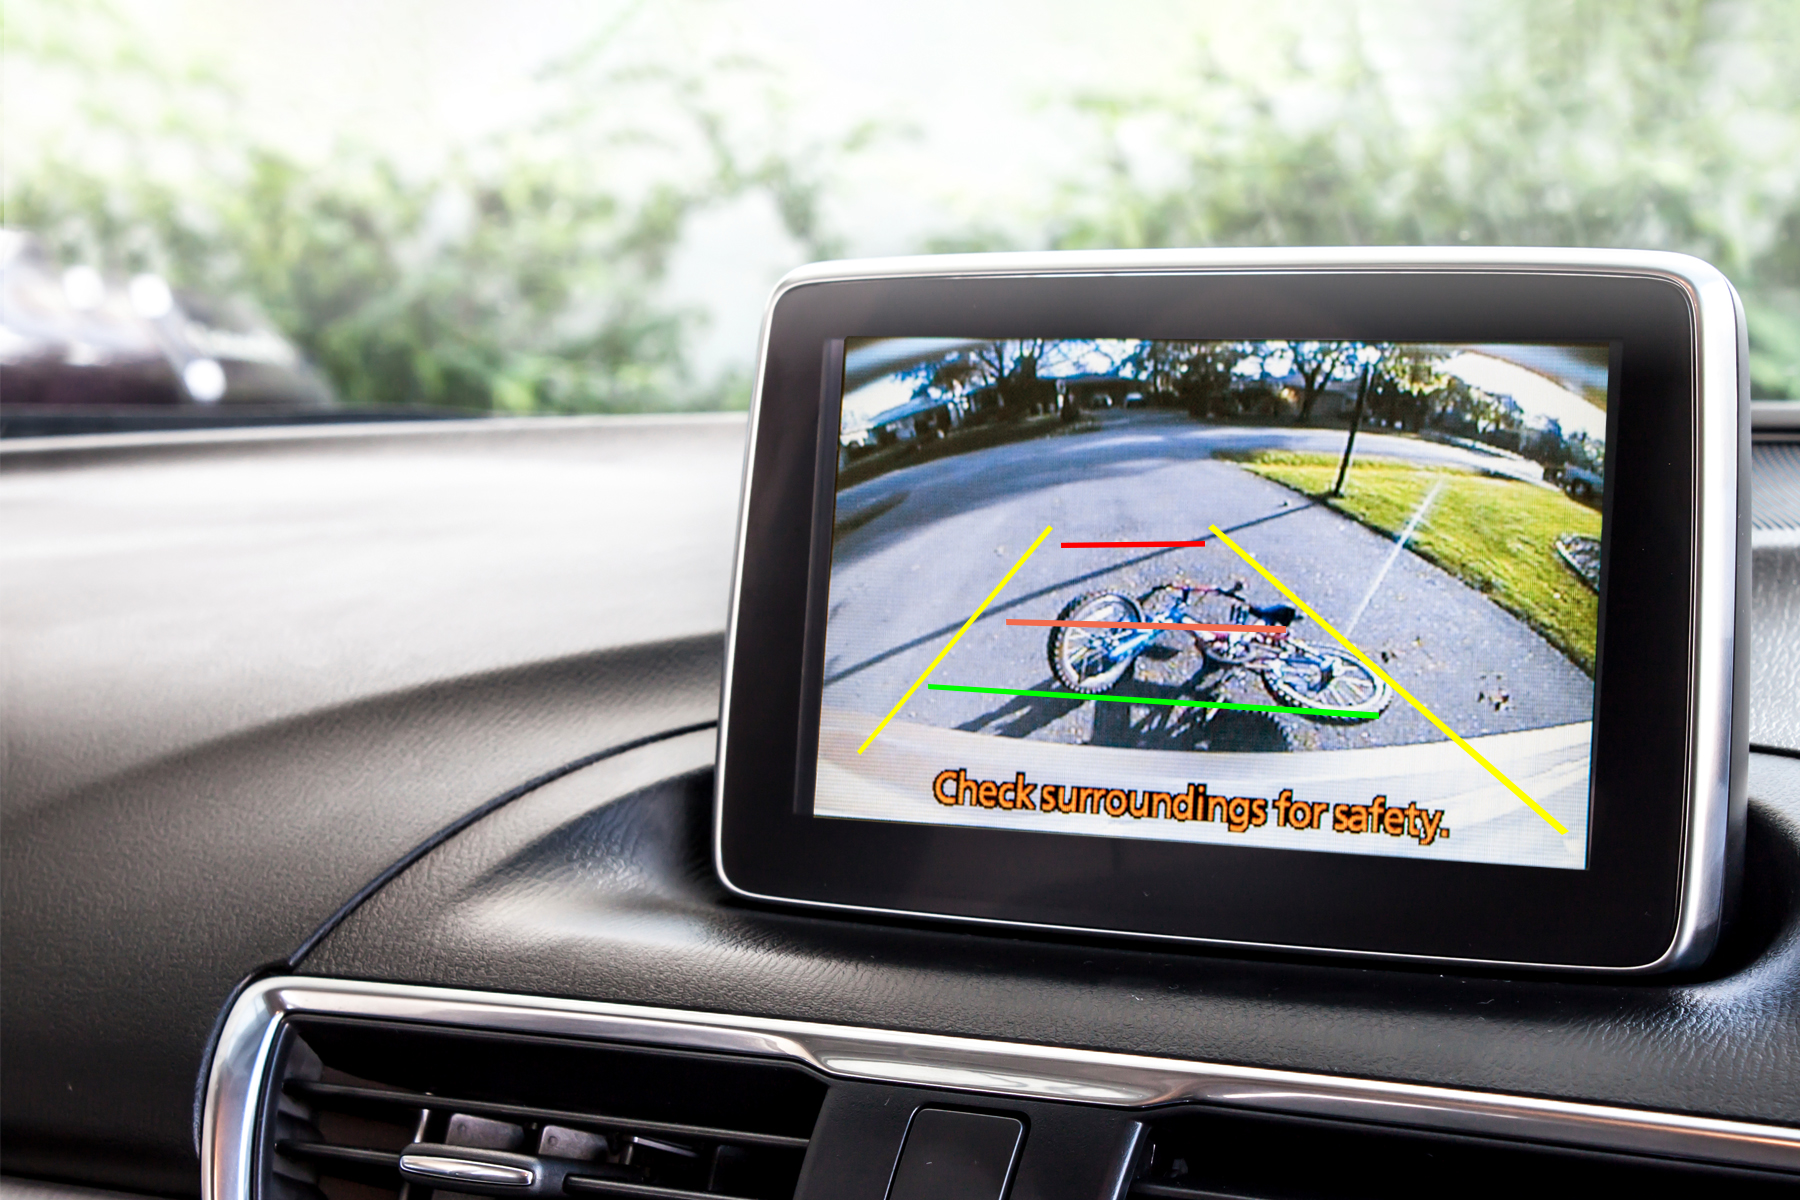 Reversing relies on video for safety updates